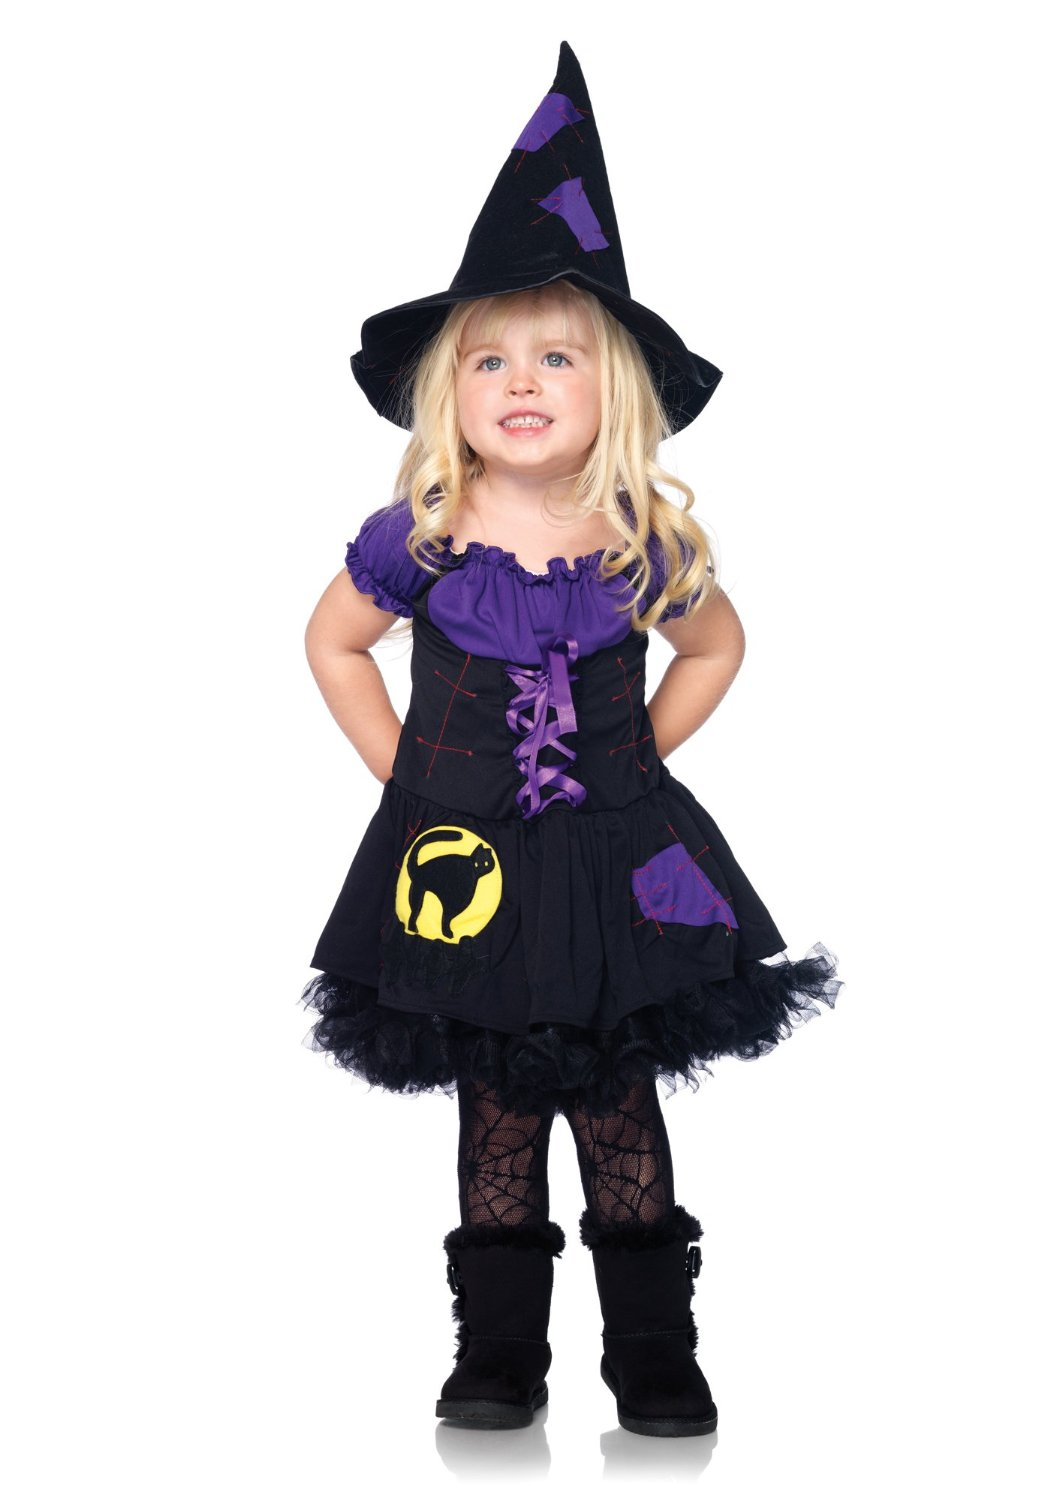 LegAvenue Halloween Costume For Kids [L] Black Cat Witch, Patchwork Peasant Dress And Matching Hat (2 PC)